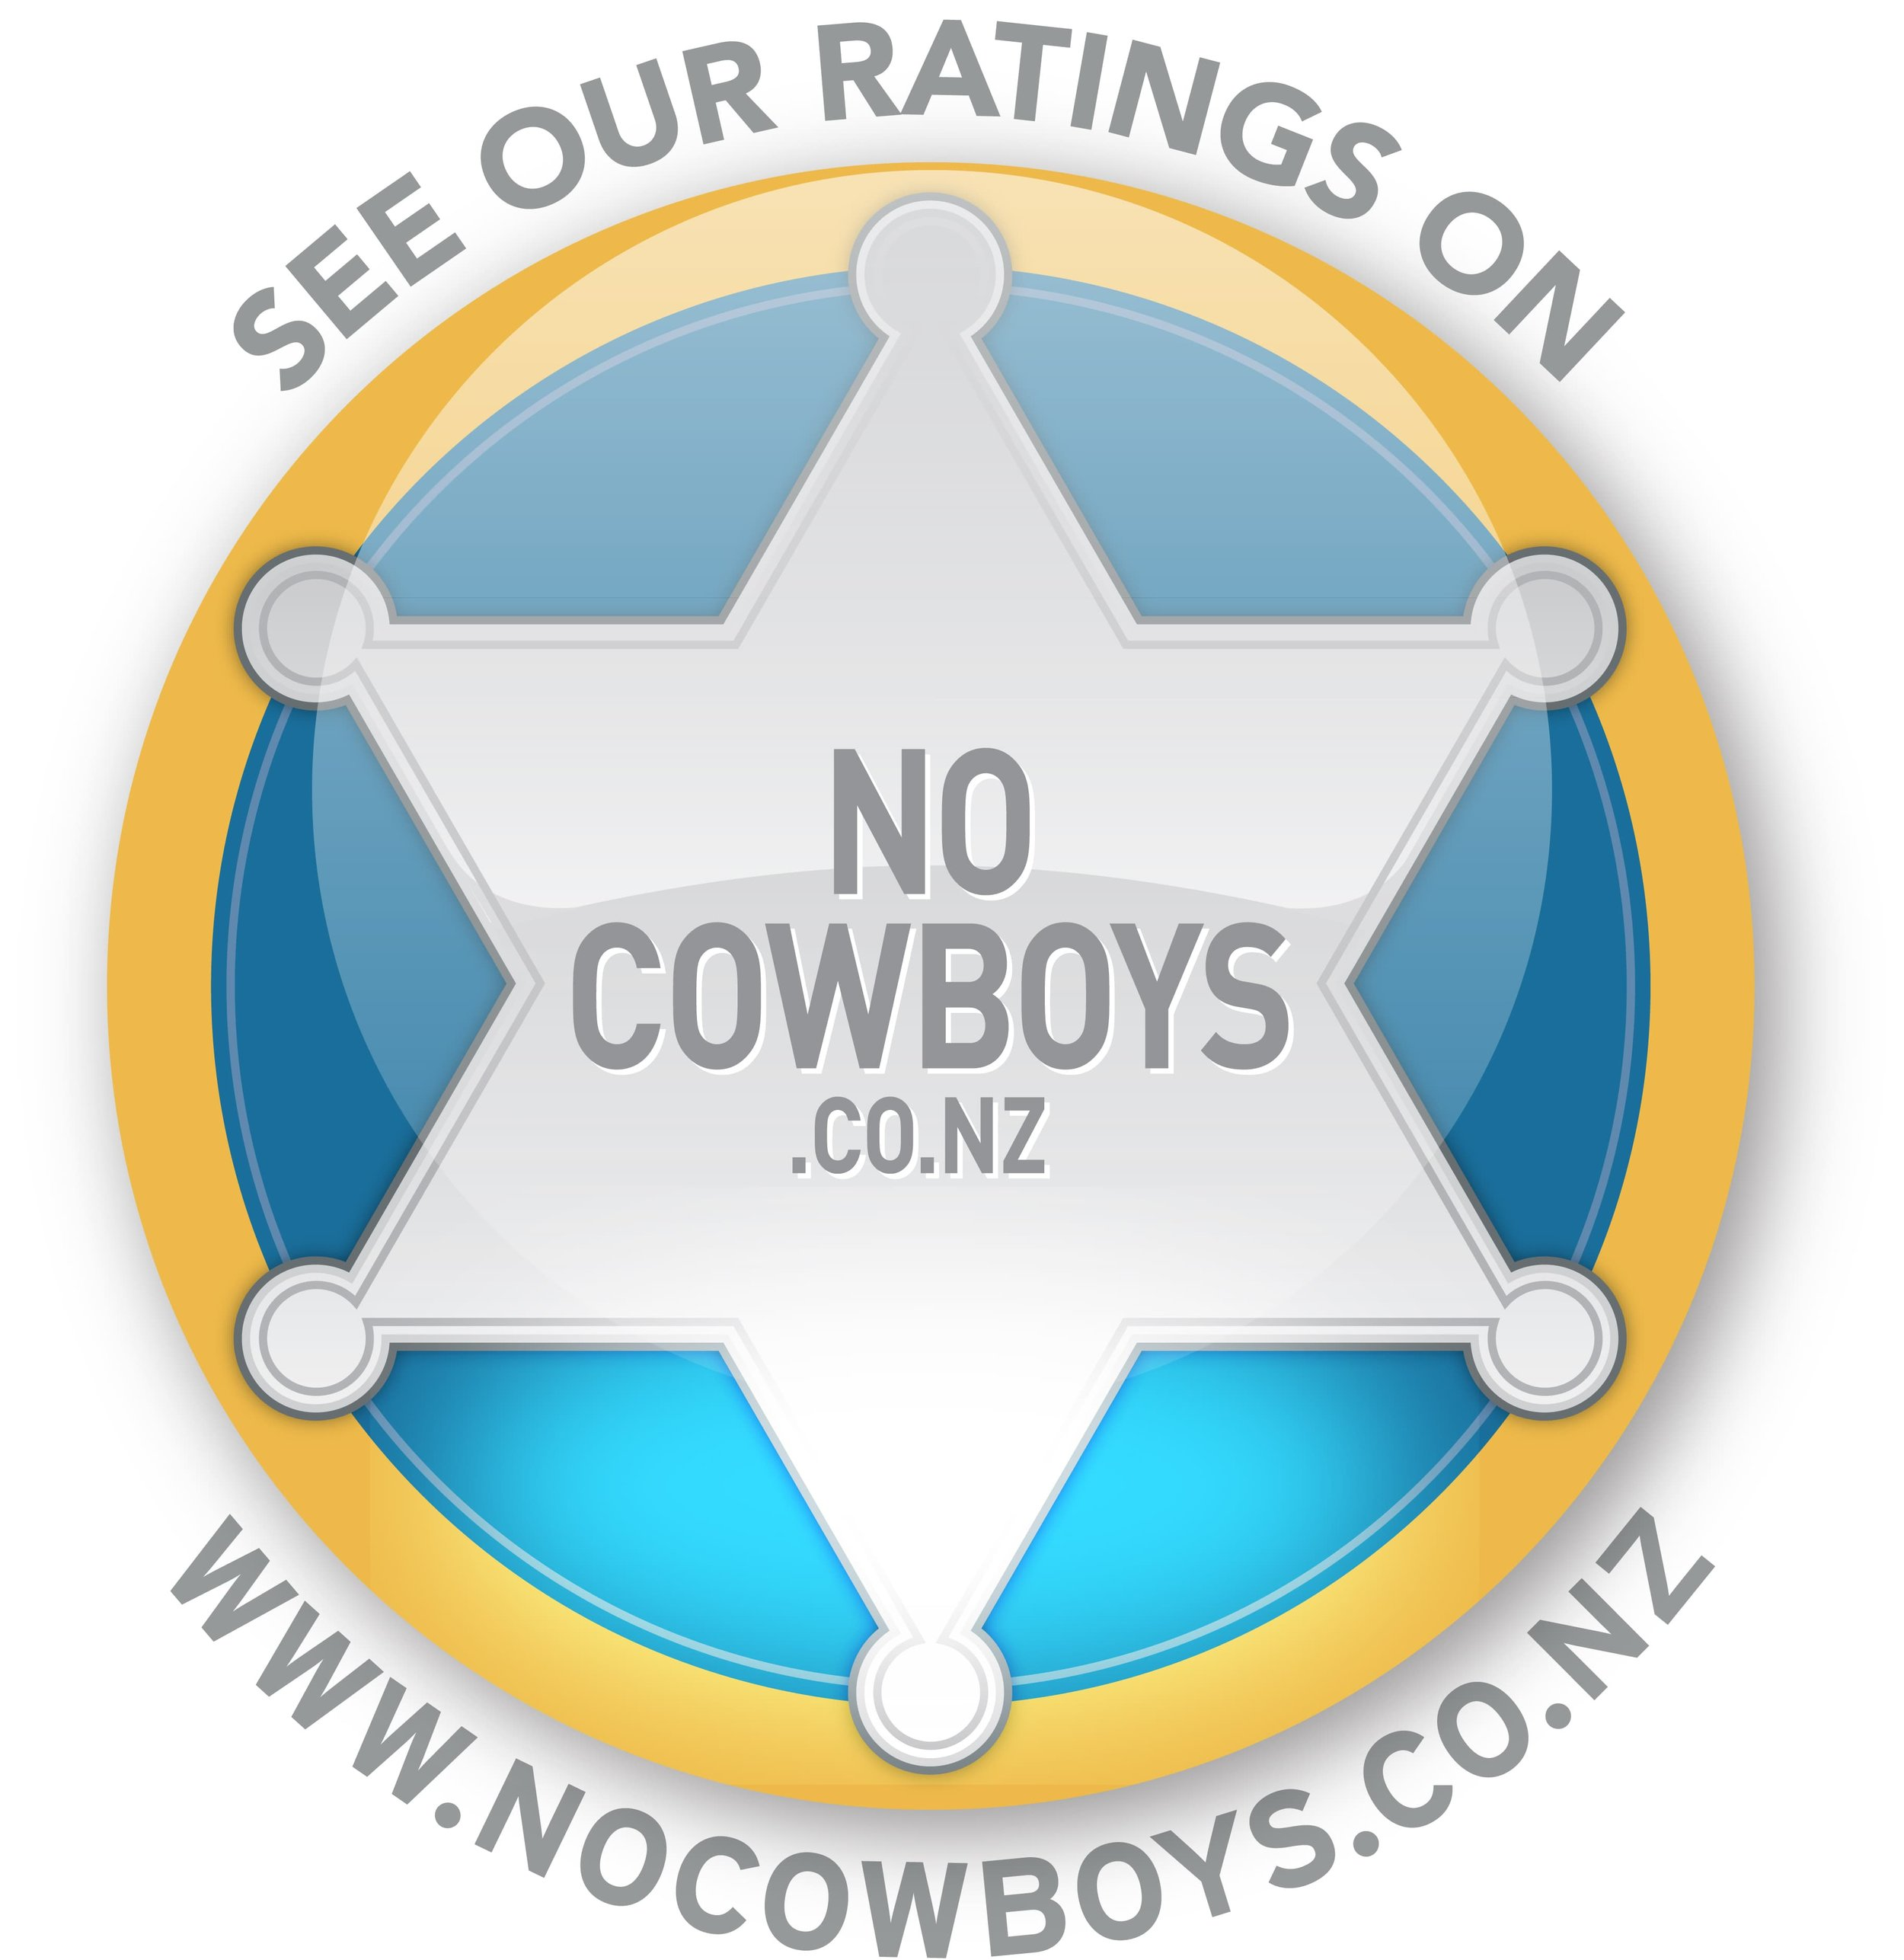 nocowboys.co.nz